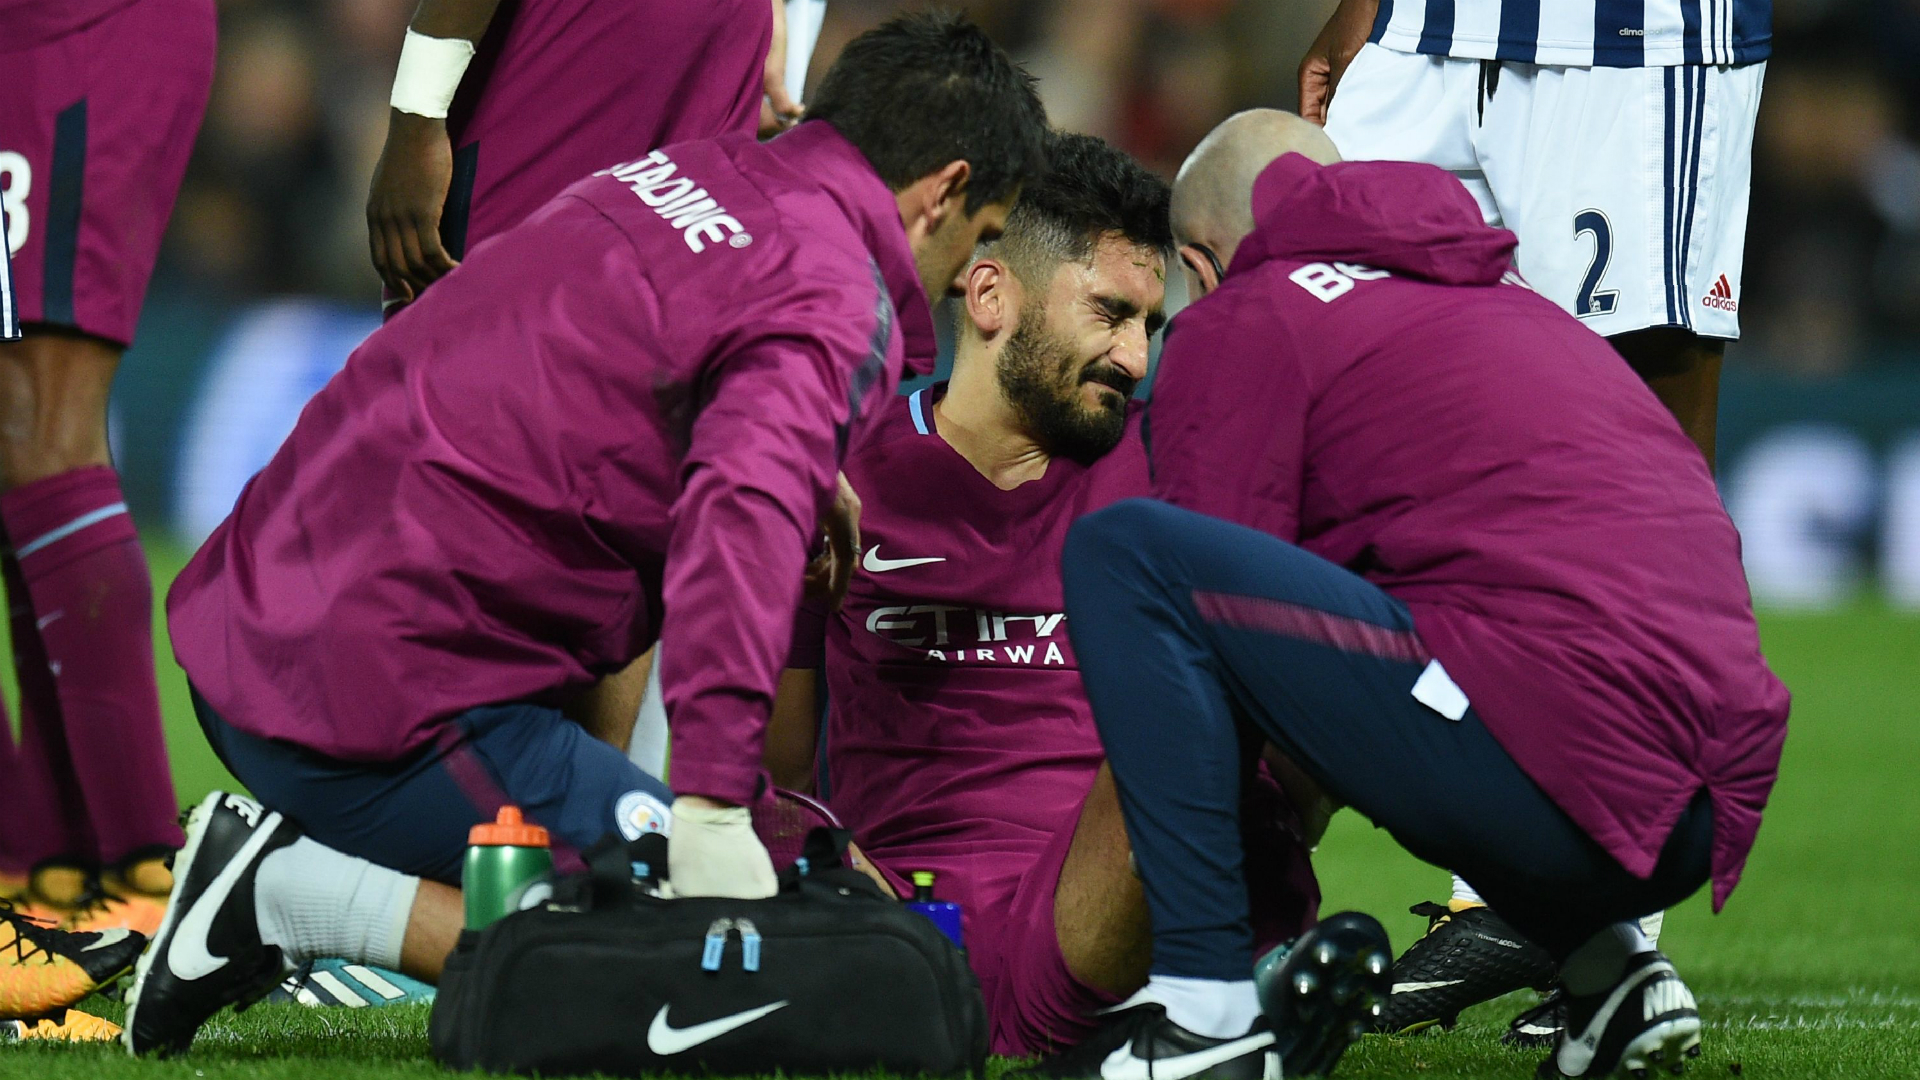 Maybe a month out - Guardiola hopeful Gundogan injury not serious